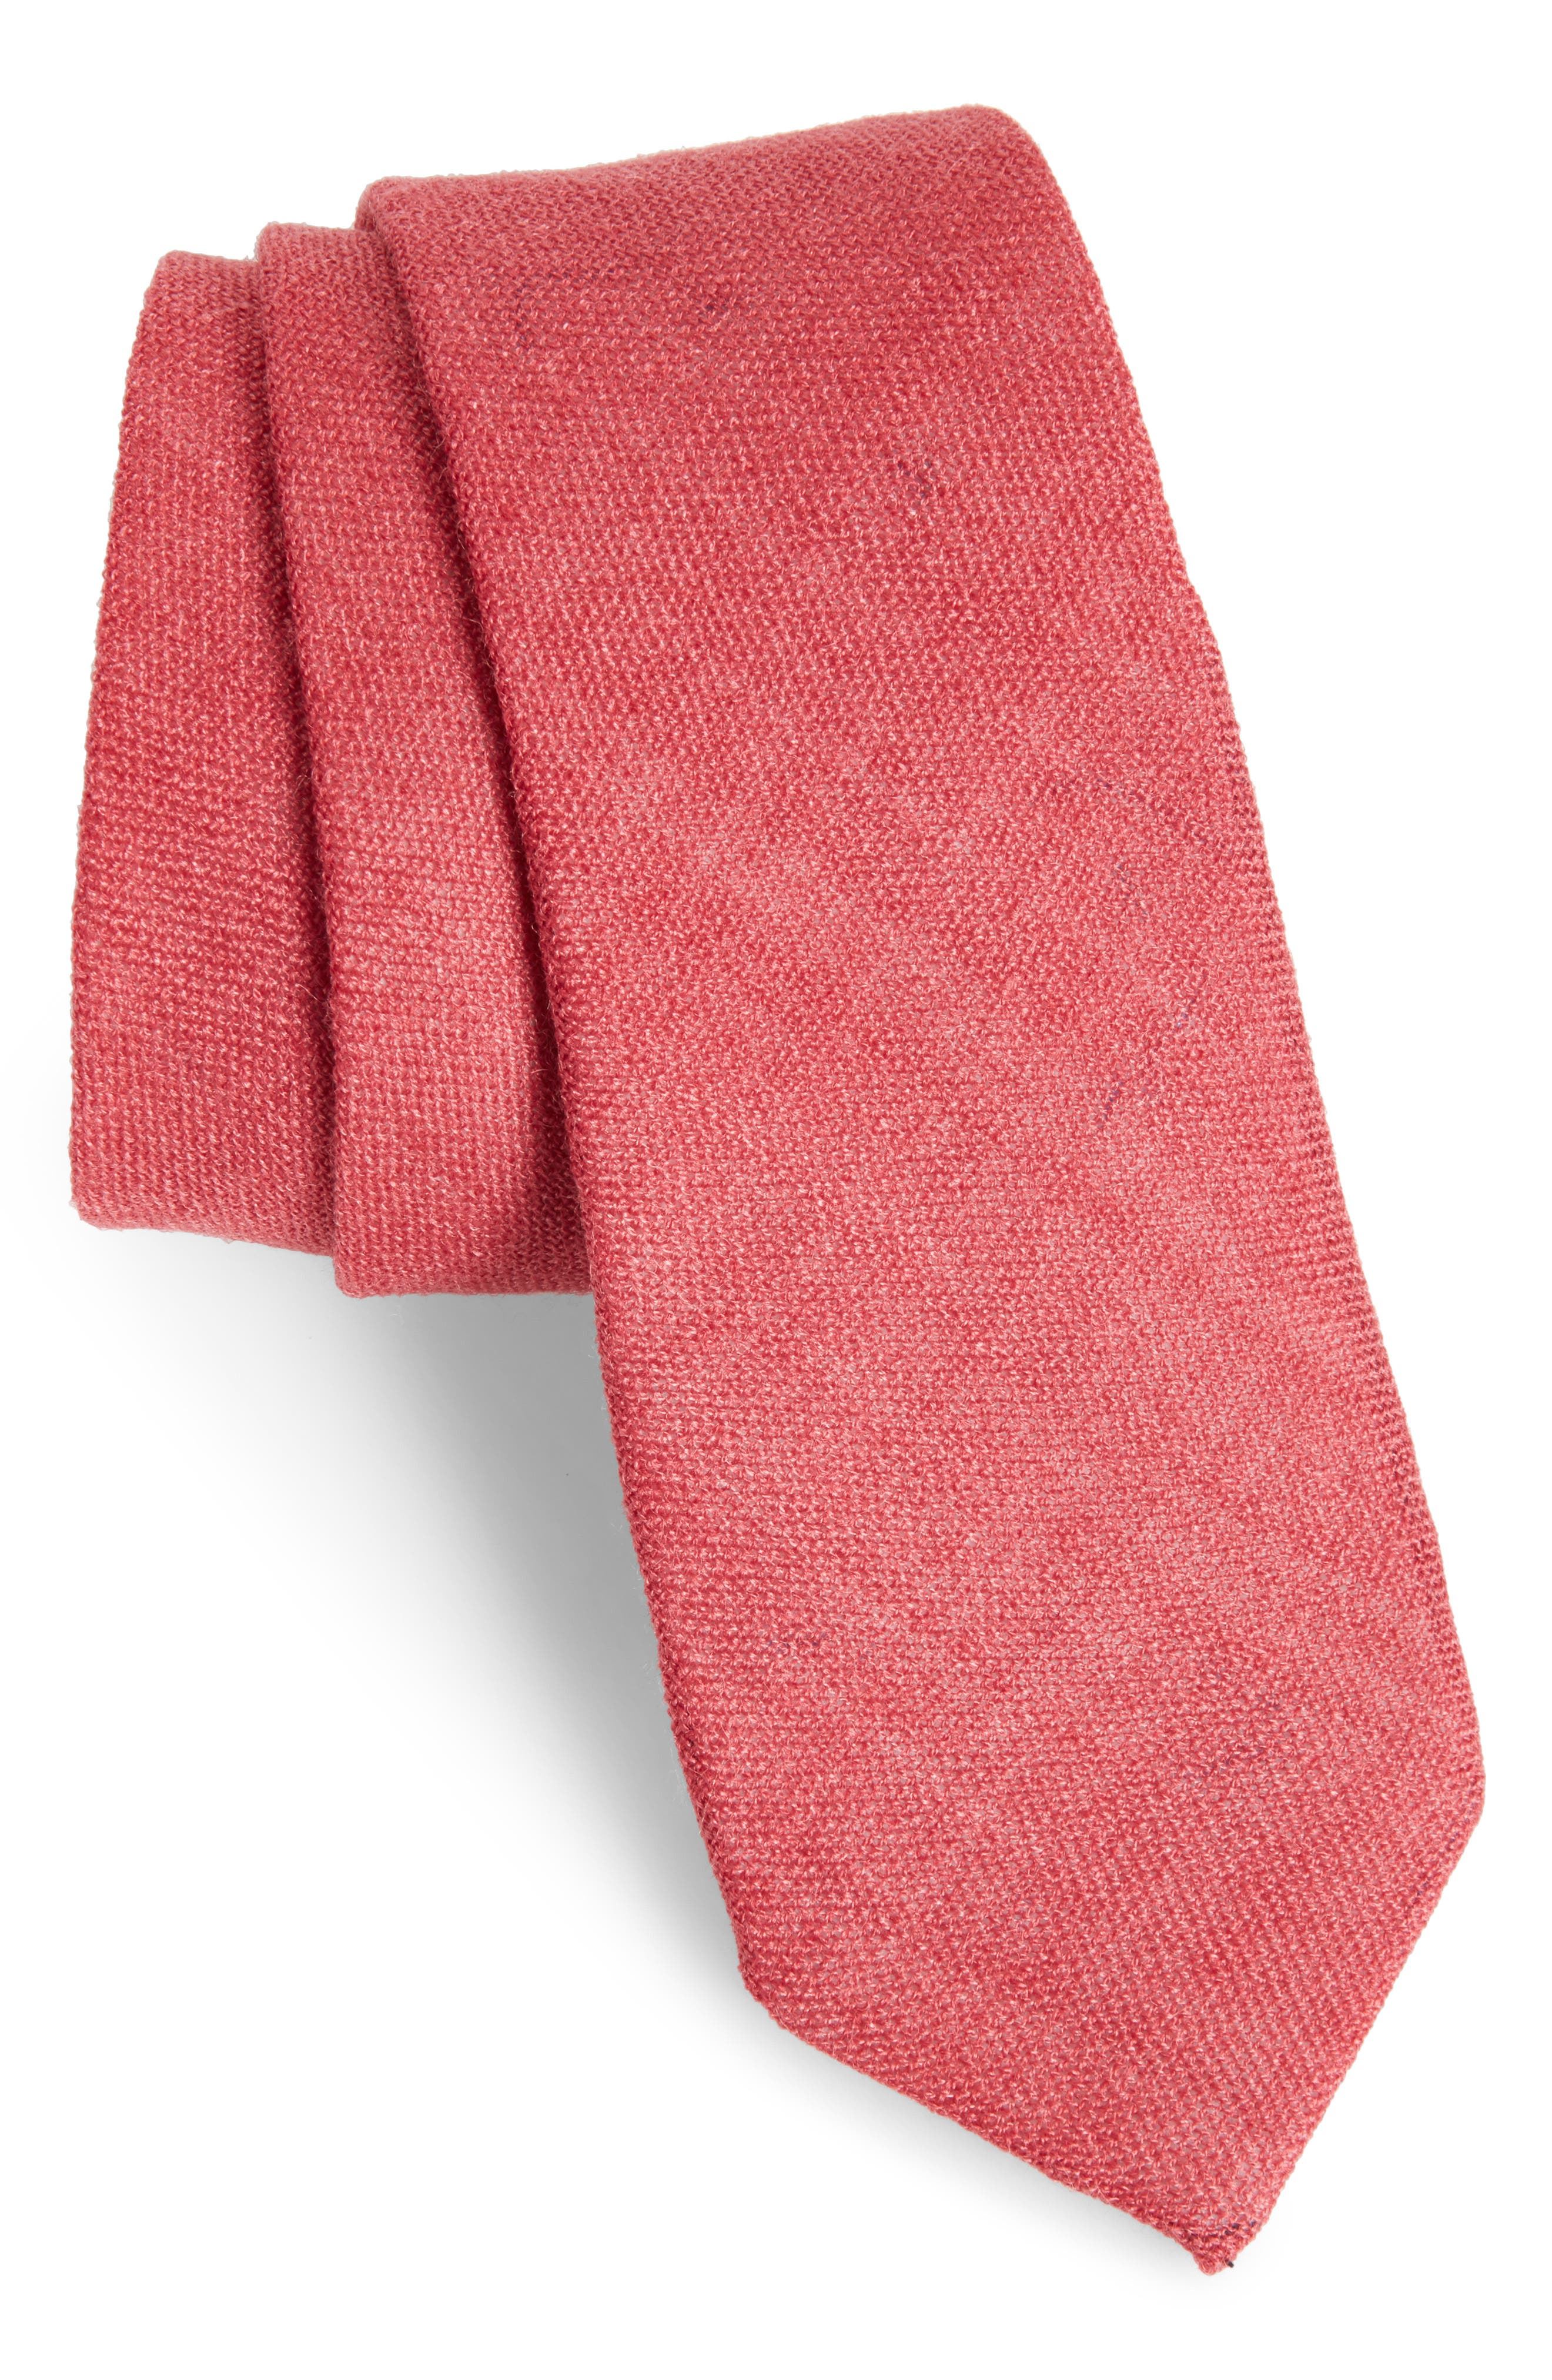 Bradford Solid Cotton Skinny Tie,                             Main thumbnail 1, color,                             Red